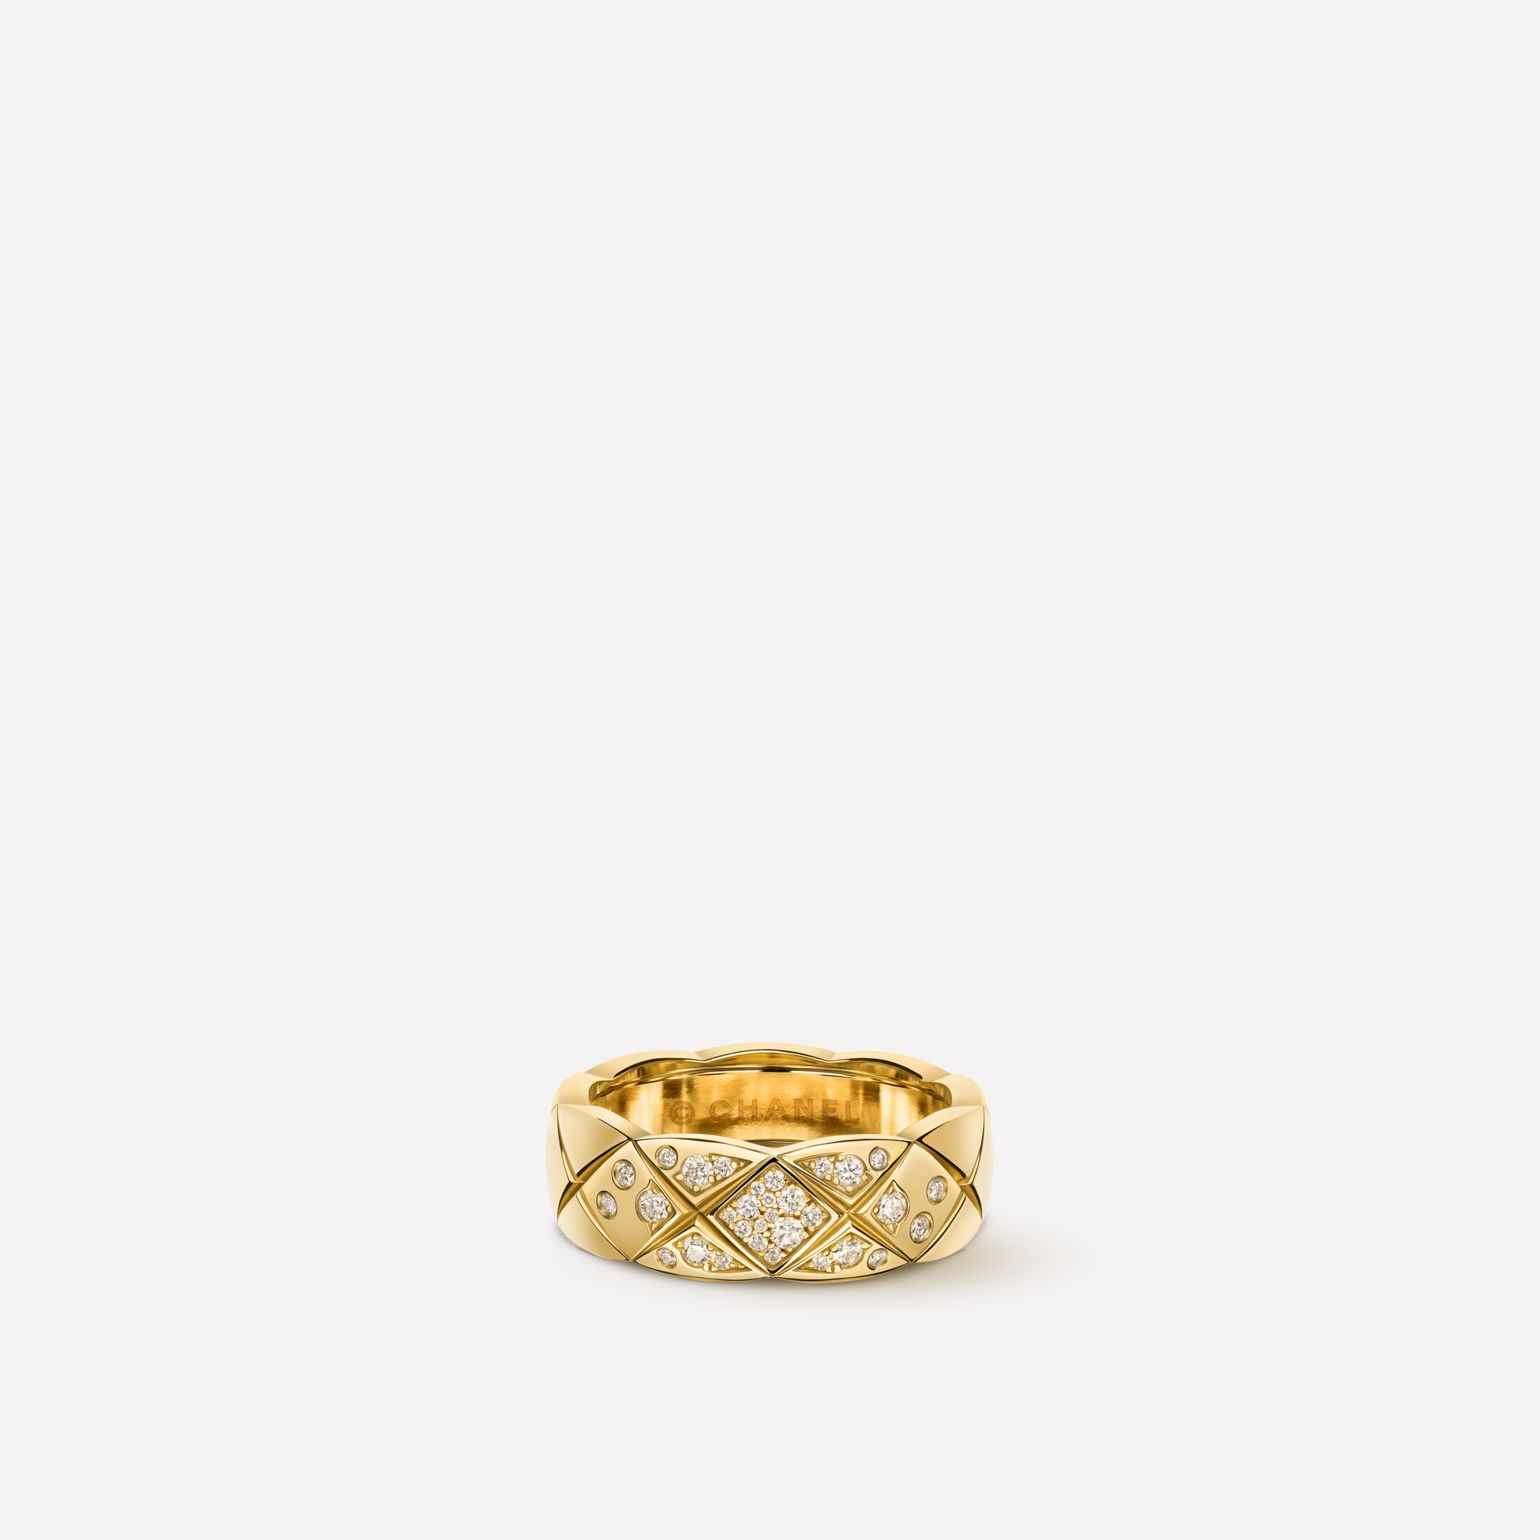 Coco Crush ring Quilted motif ring, small version, in 18K yellow gold and diamonds